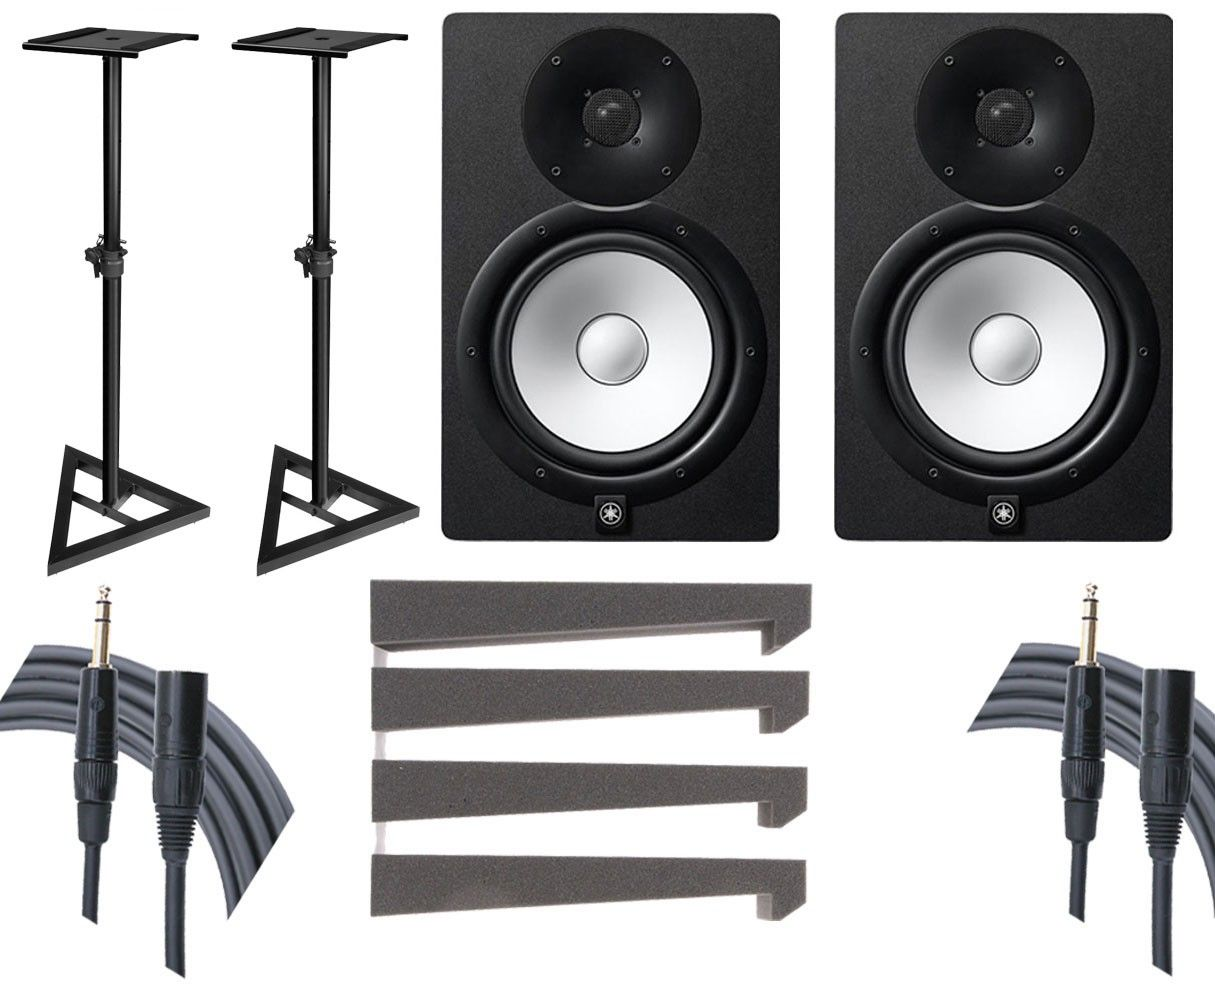 Speakers 2x Yamaha Hs8 Stands Mopads Mogami Cables 85988 Blank Home Theater Wiring